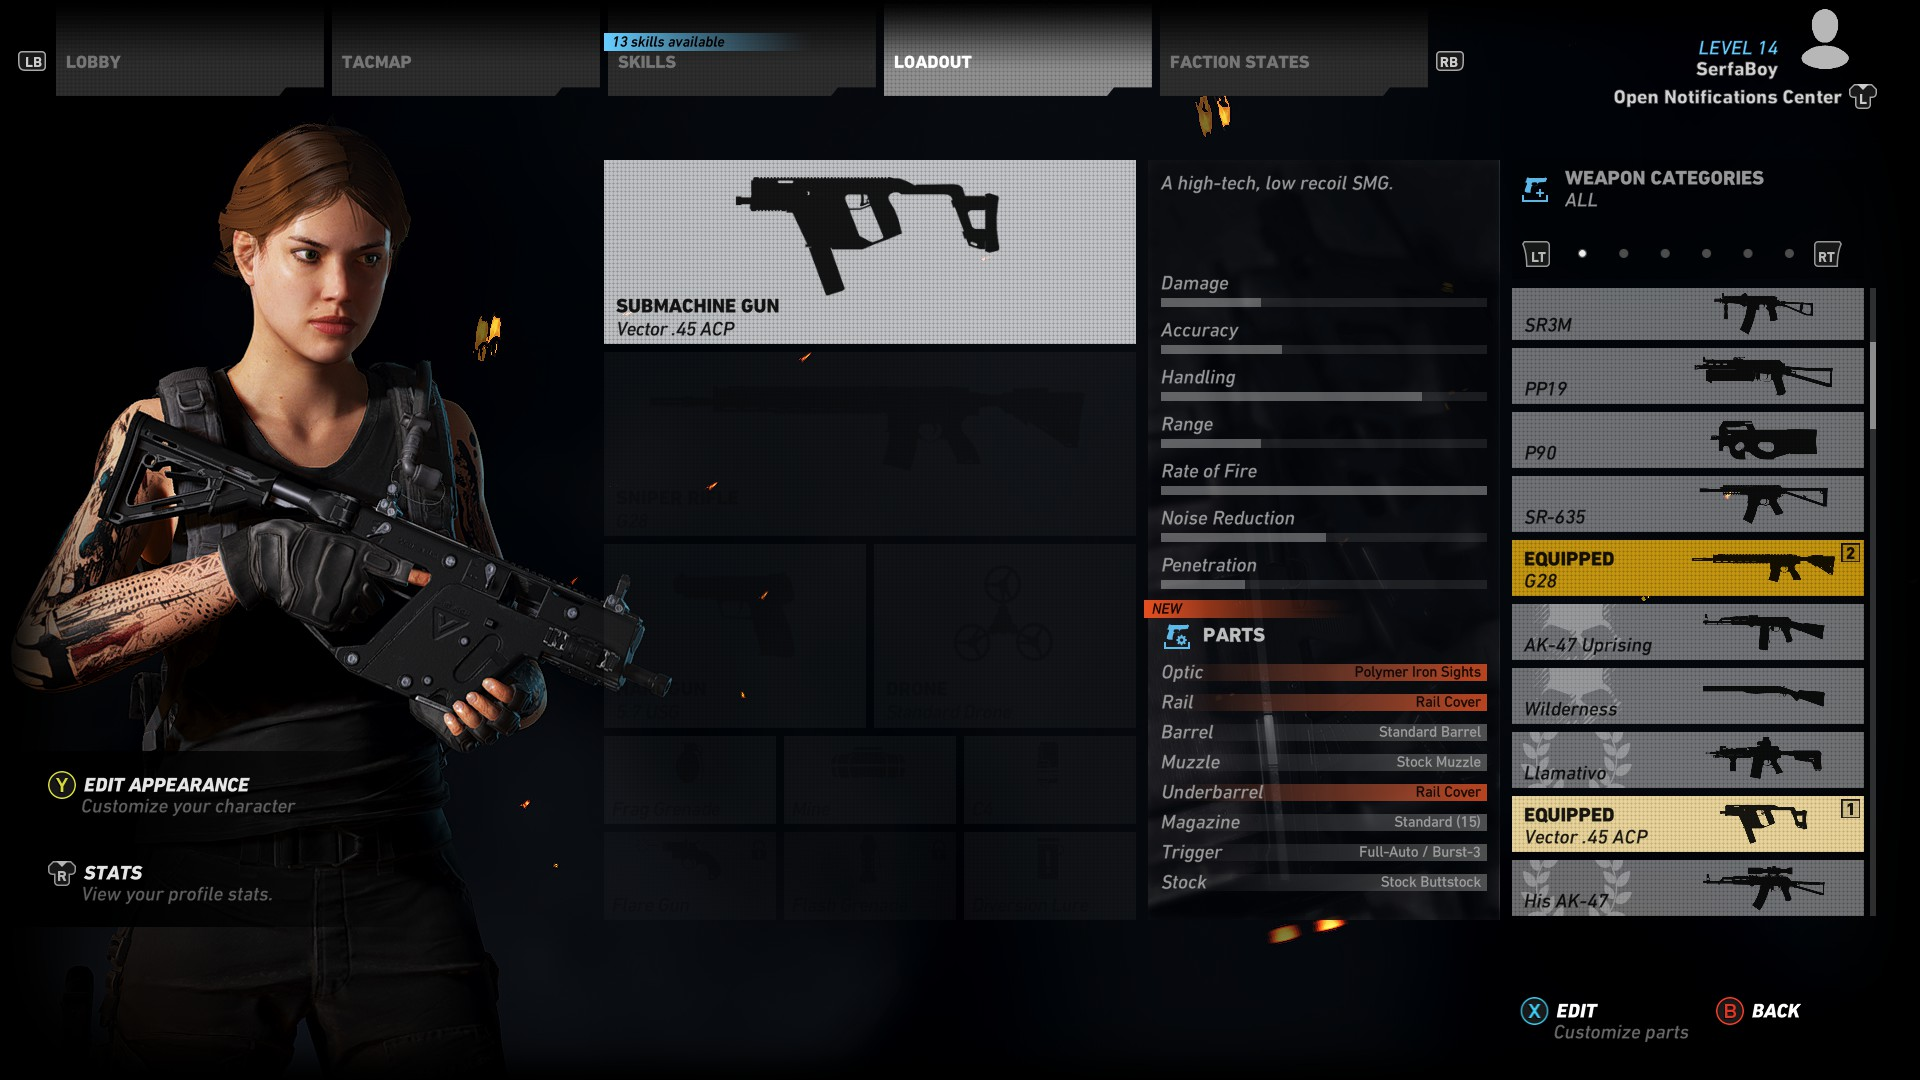 The Vector stats - How to get the Vector 45 ACP in Ghost Recon Wildlands